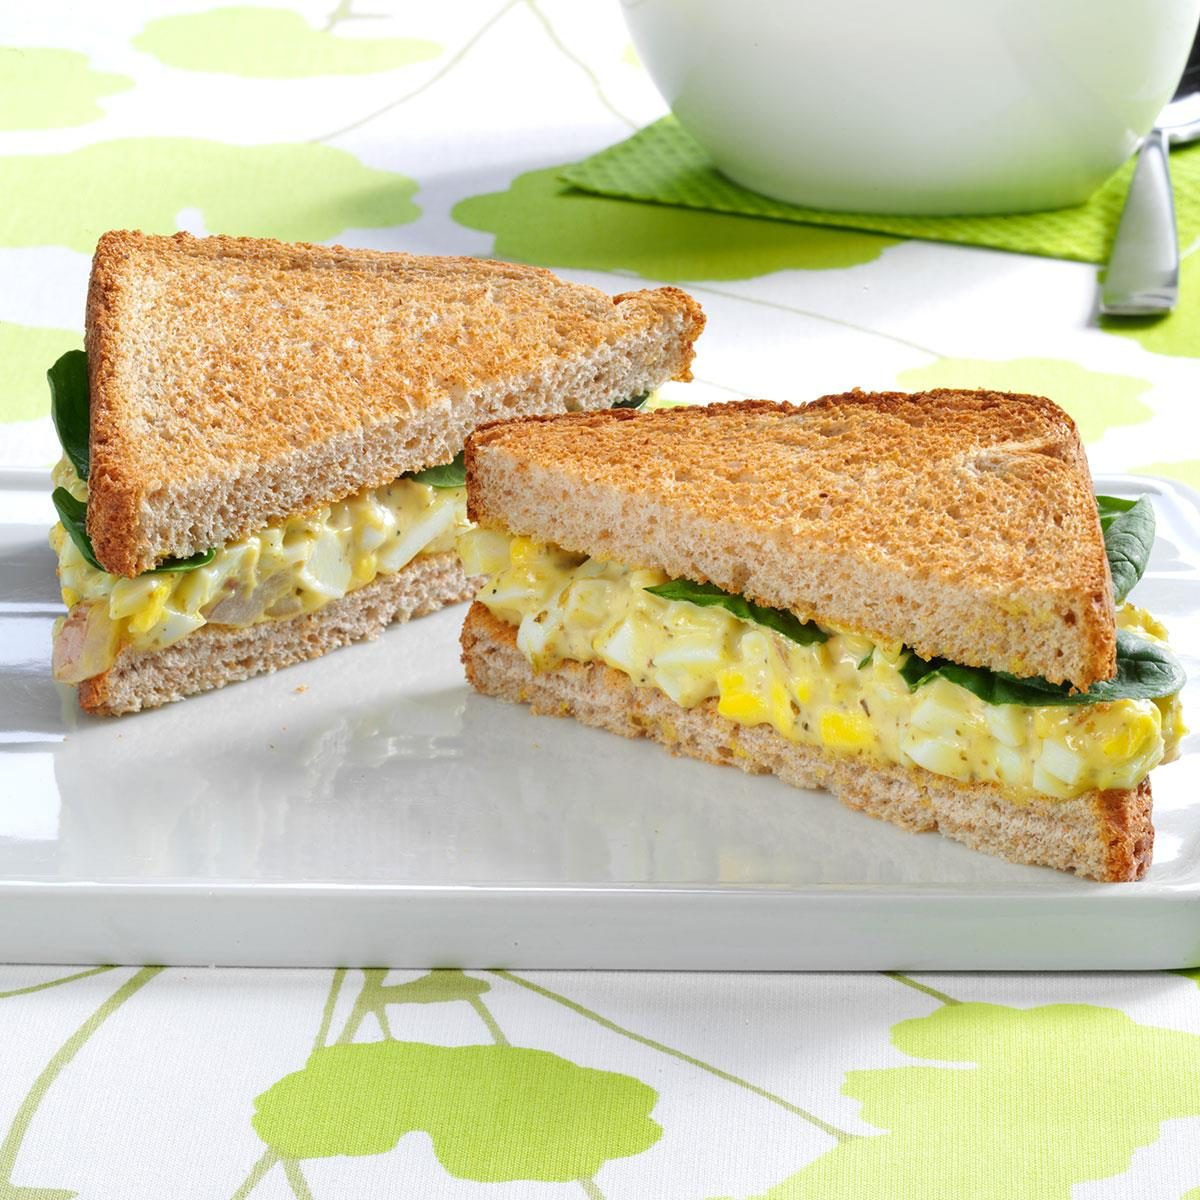 breakfast menu ideas for home